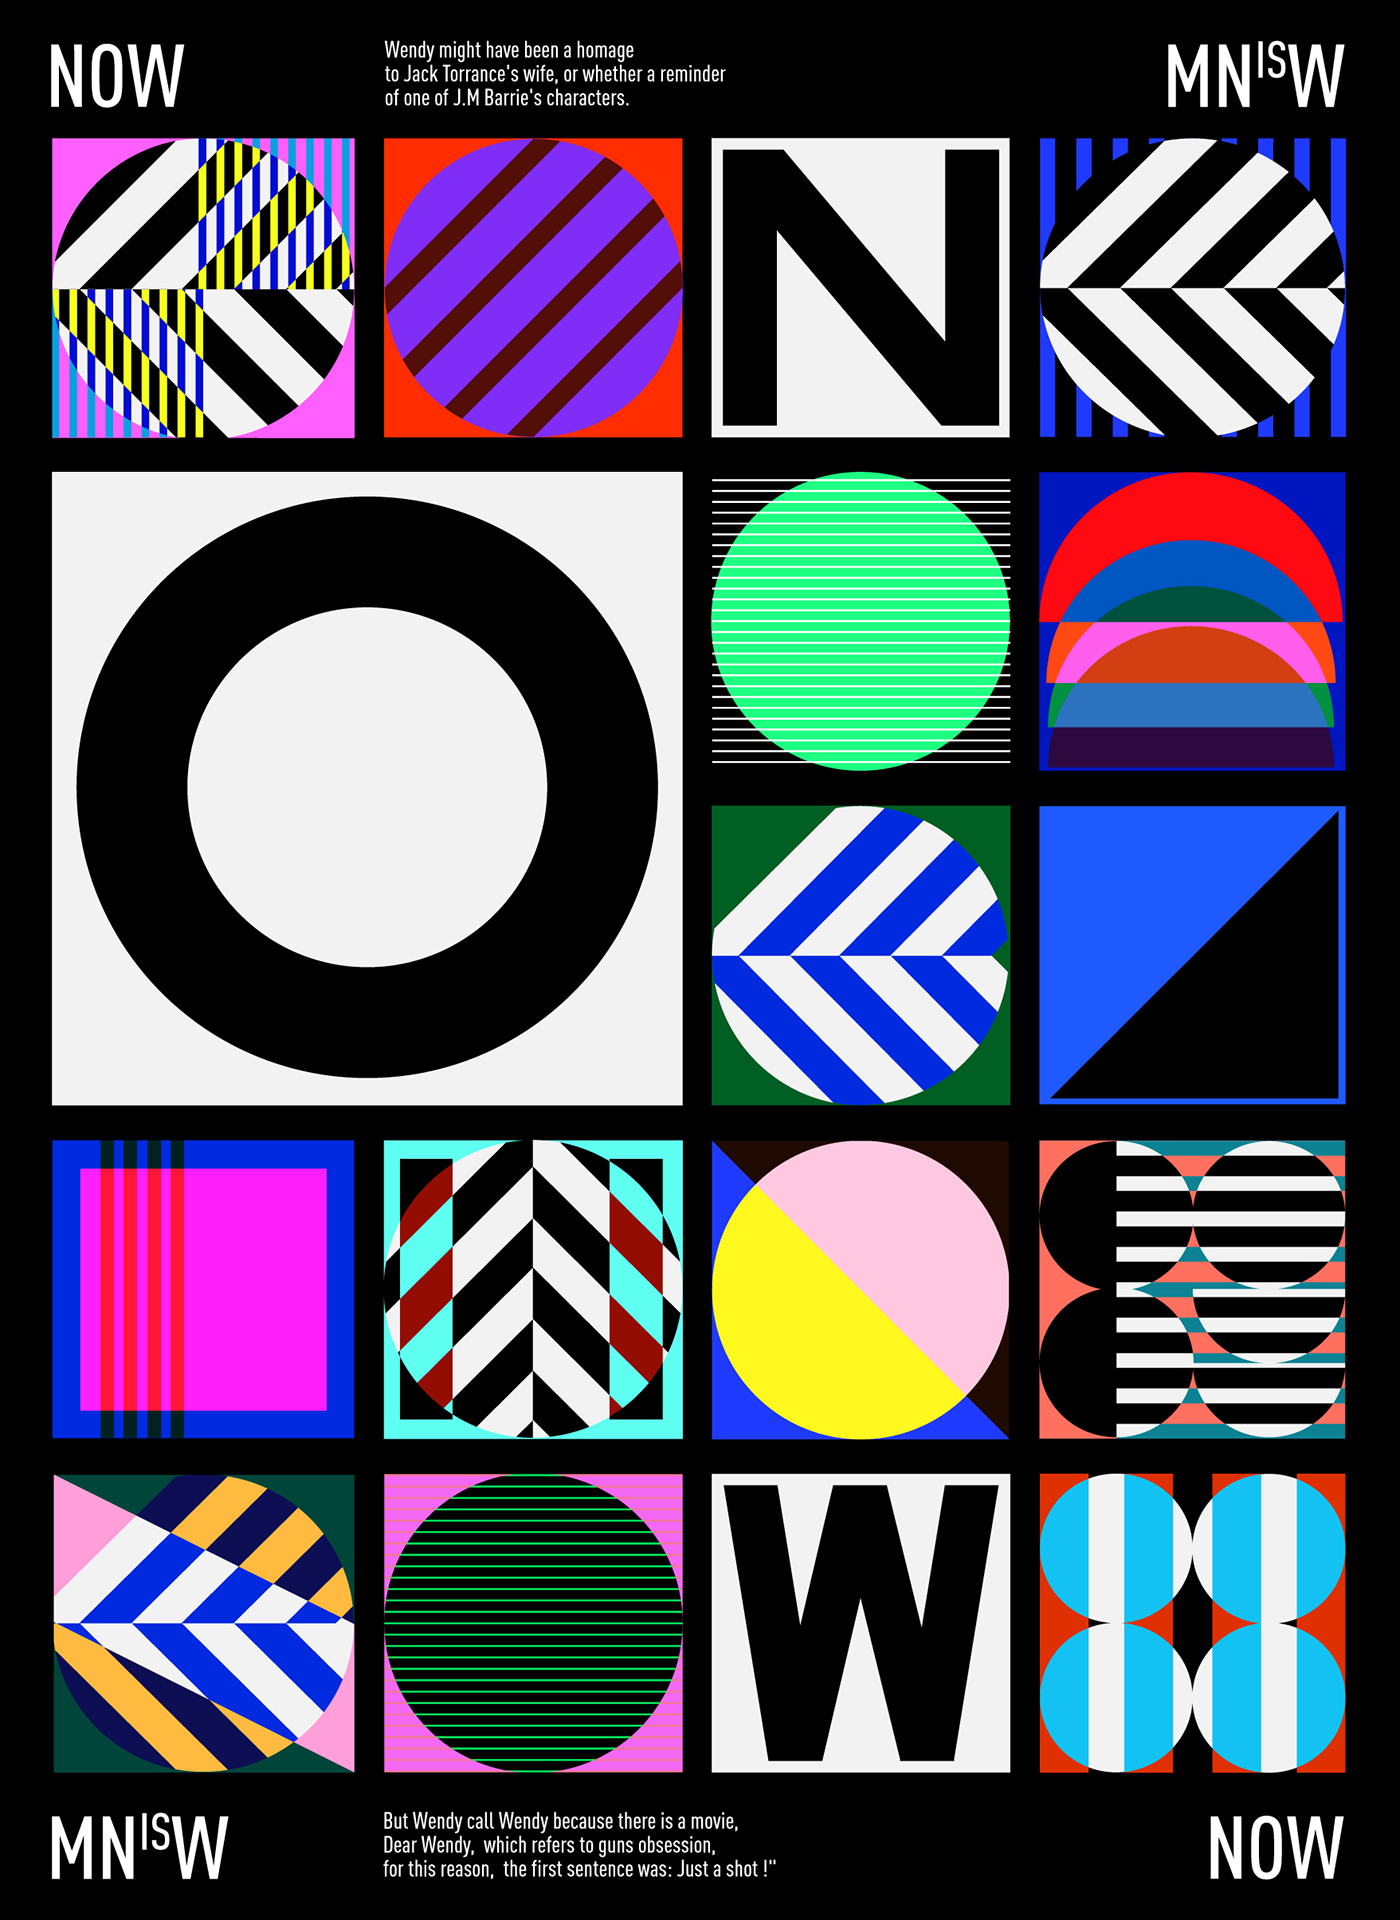 Poster composed of symbols, patterns and lettering